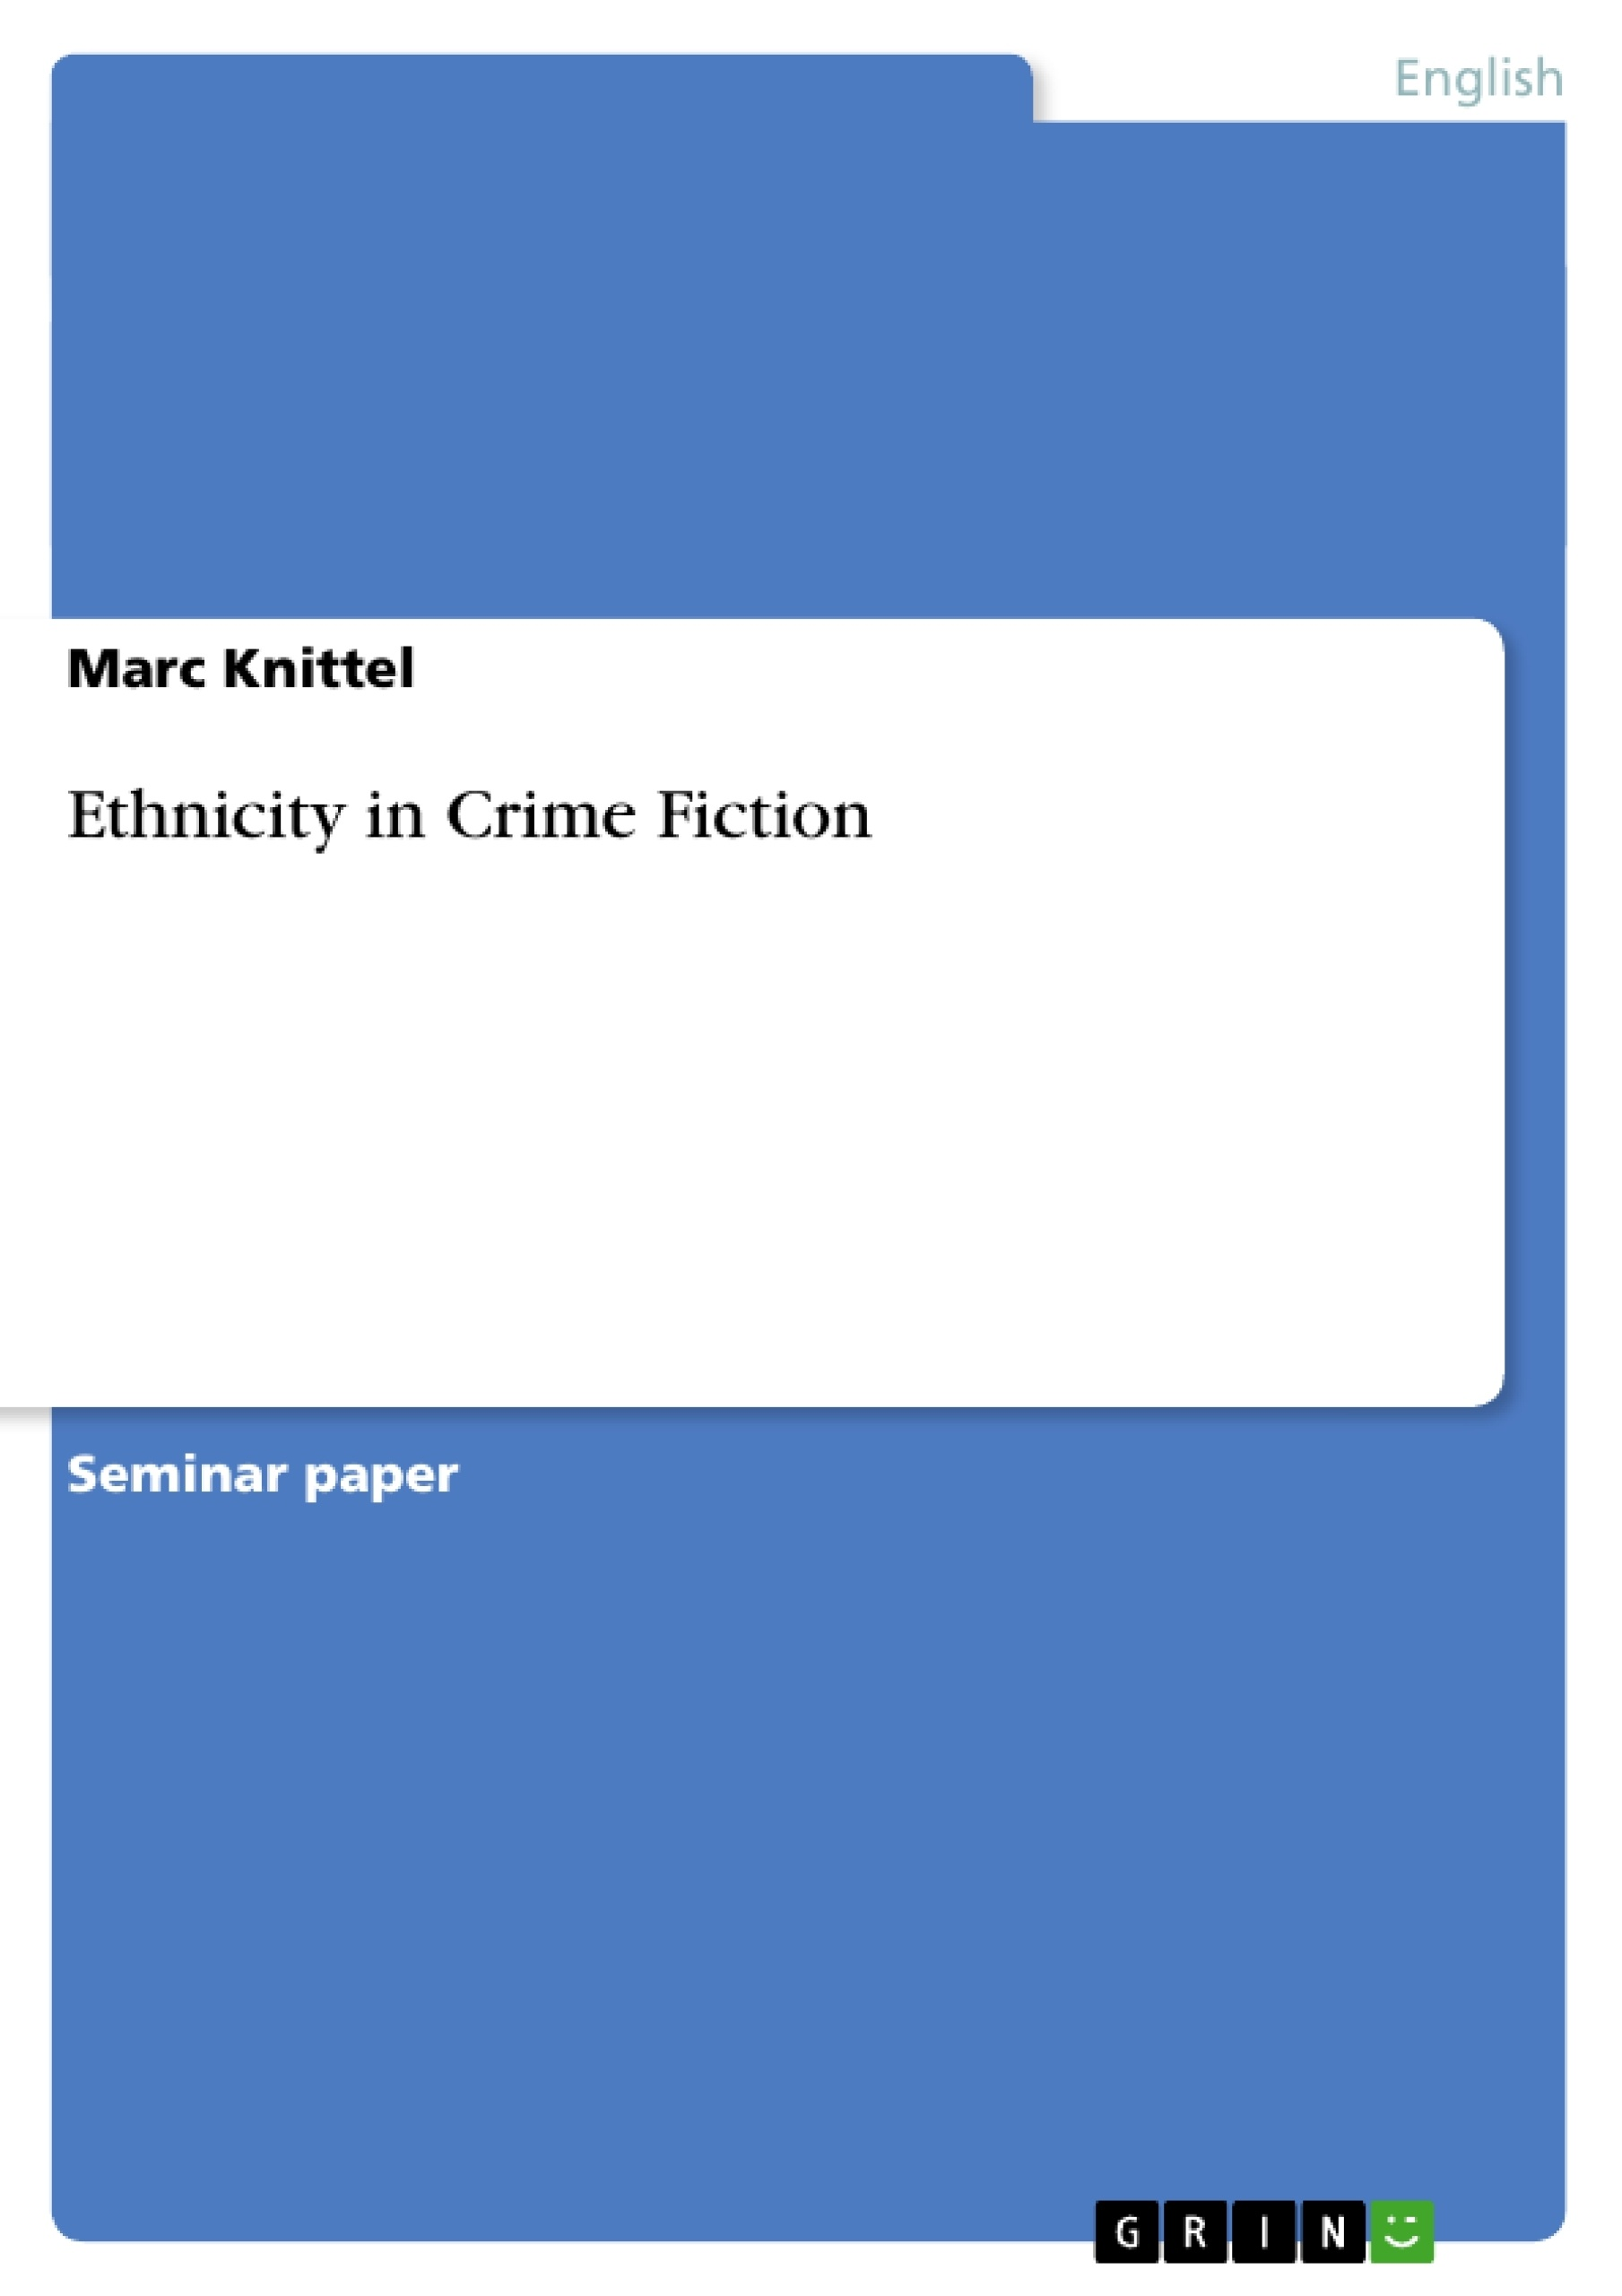 Title: Ethnicity in Crime Fiction